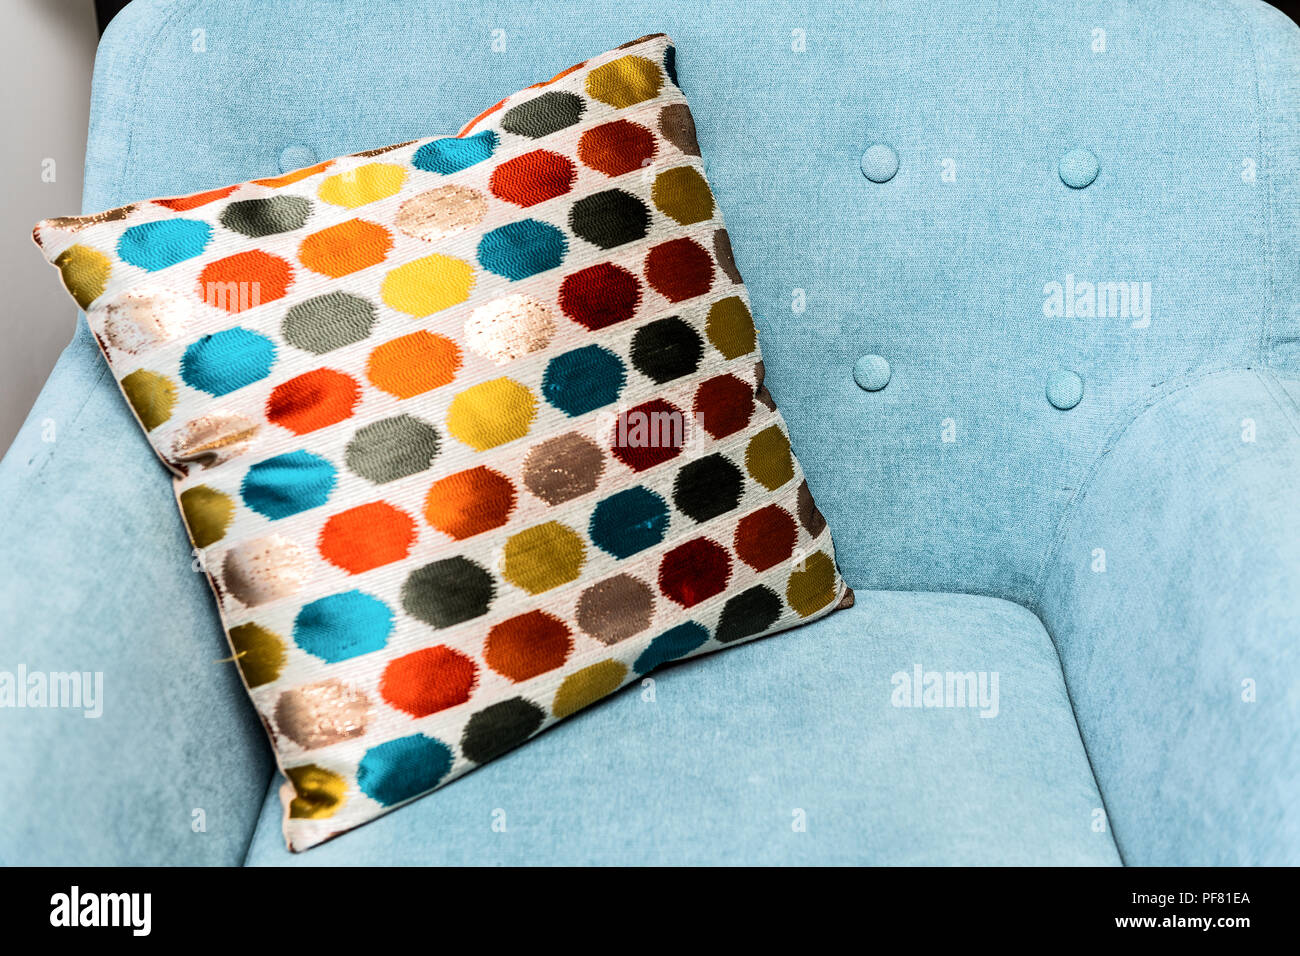 Closeup of blue comfortable, new, teal, turquoise armchair, chair with colorful, multi colored pillow, cushion with nobody - Stock Image